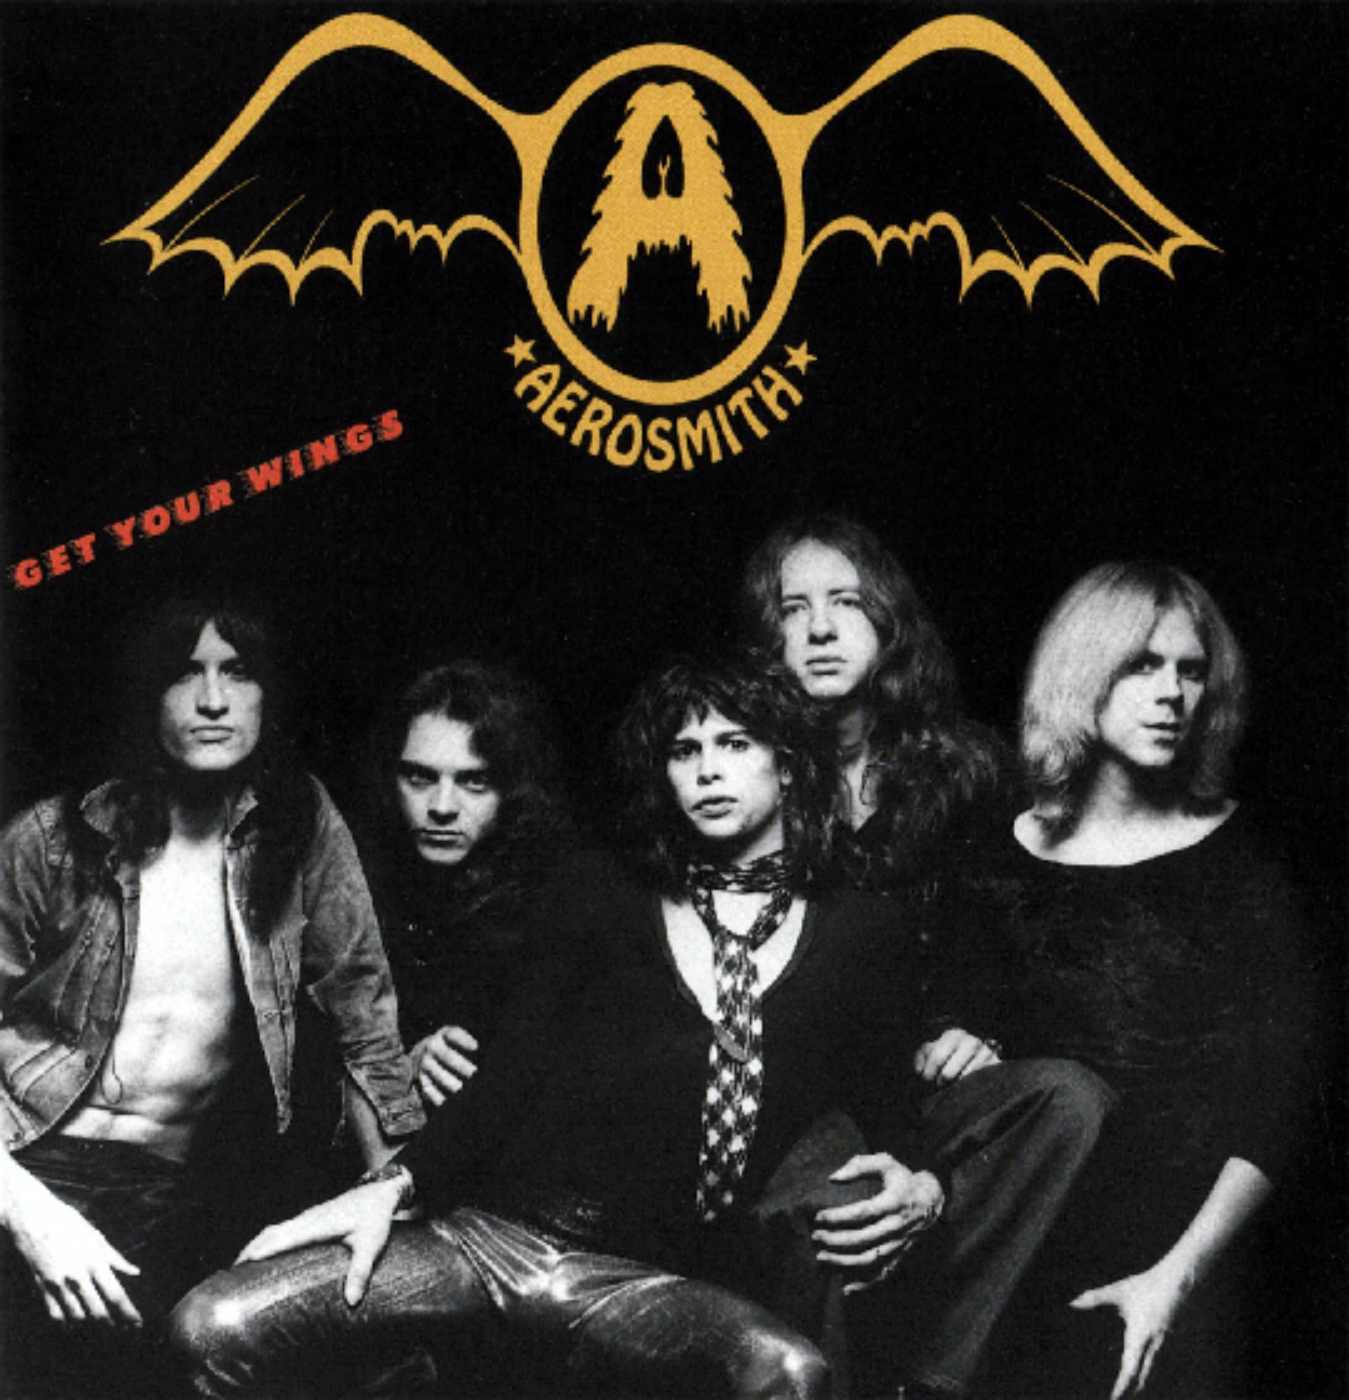 Aerosmith – Get Your Wings (Record Store Day 2013 Vinyl